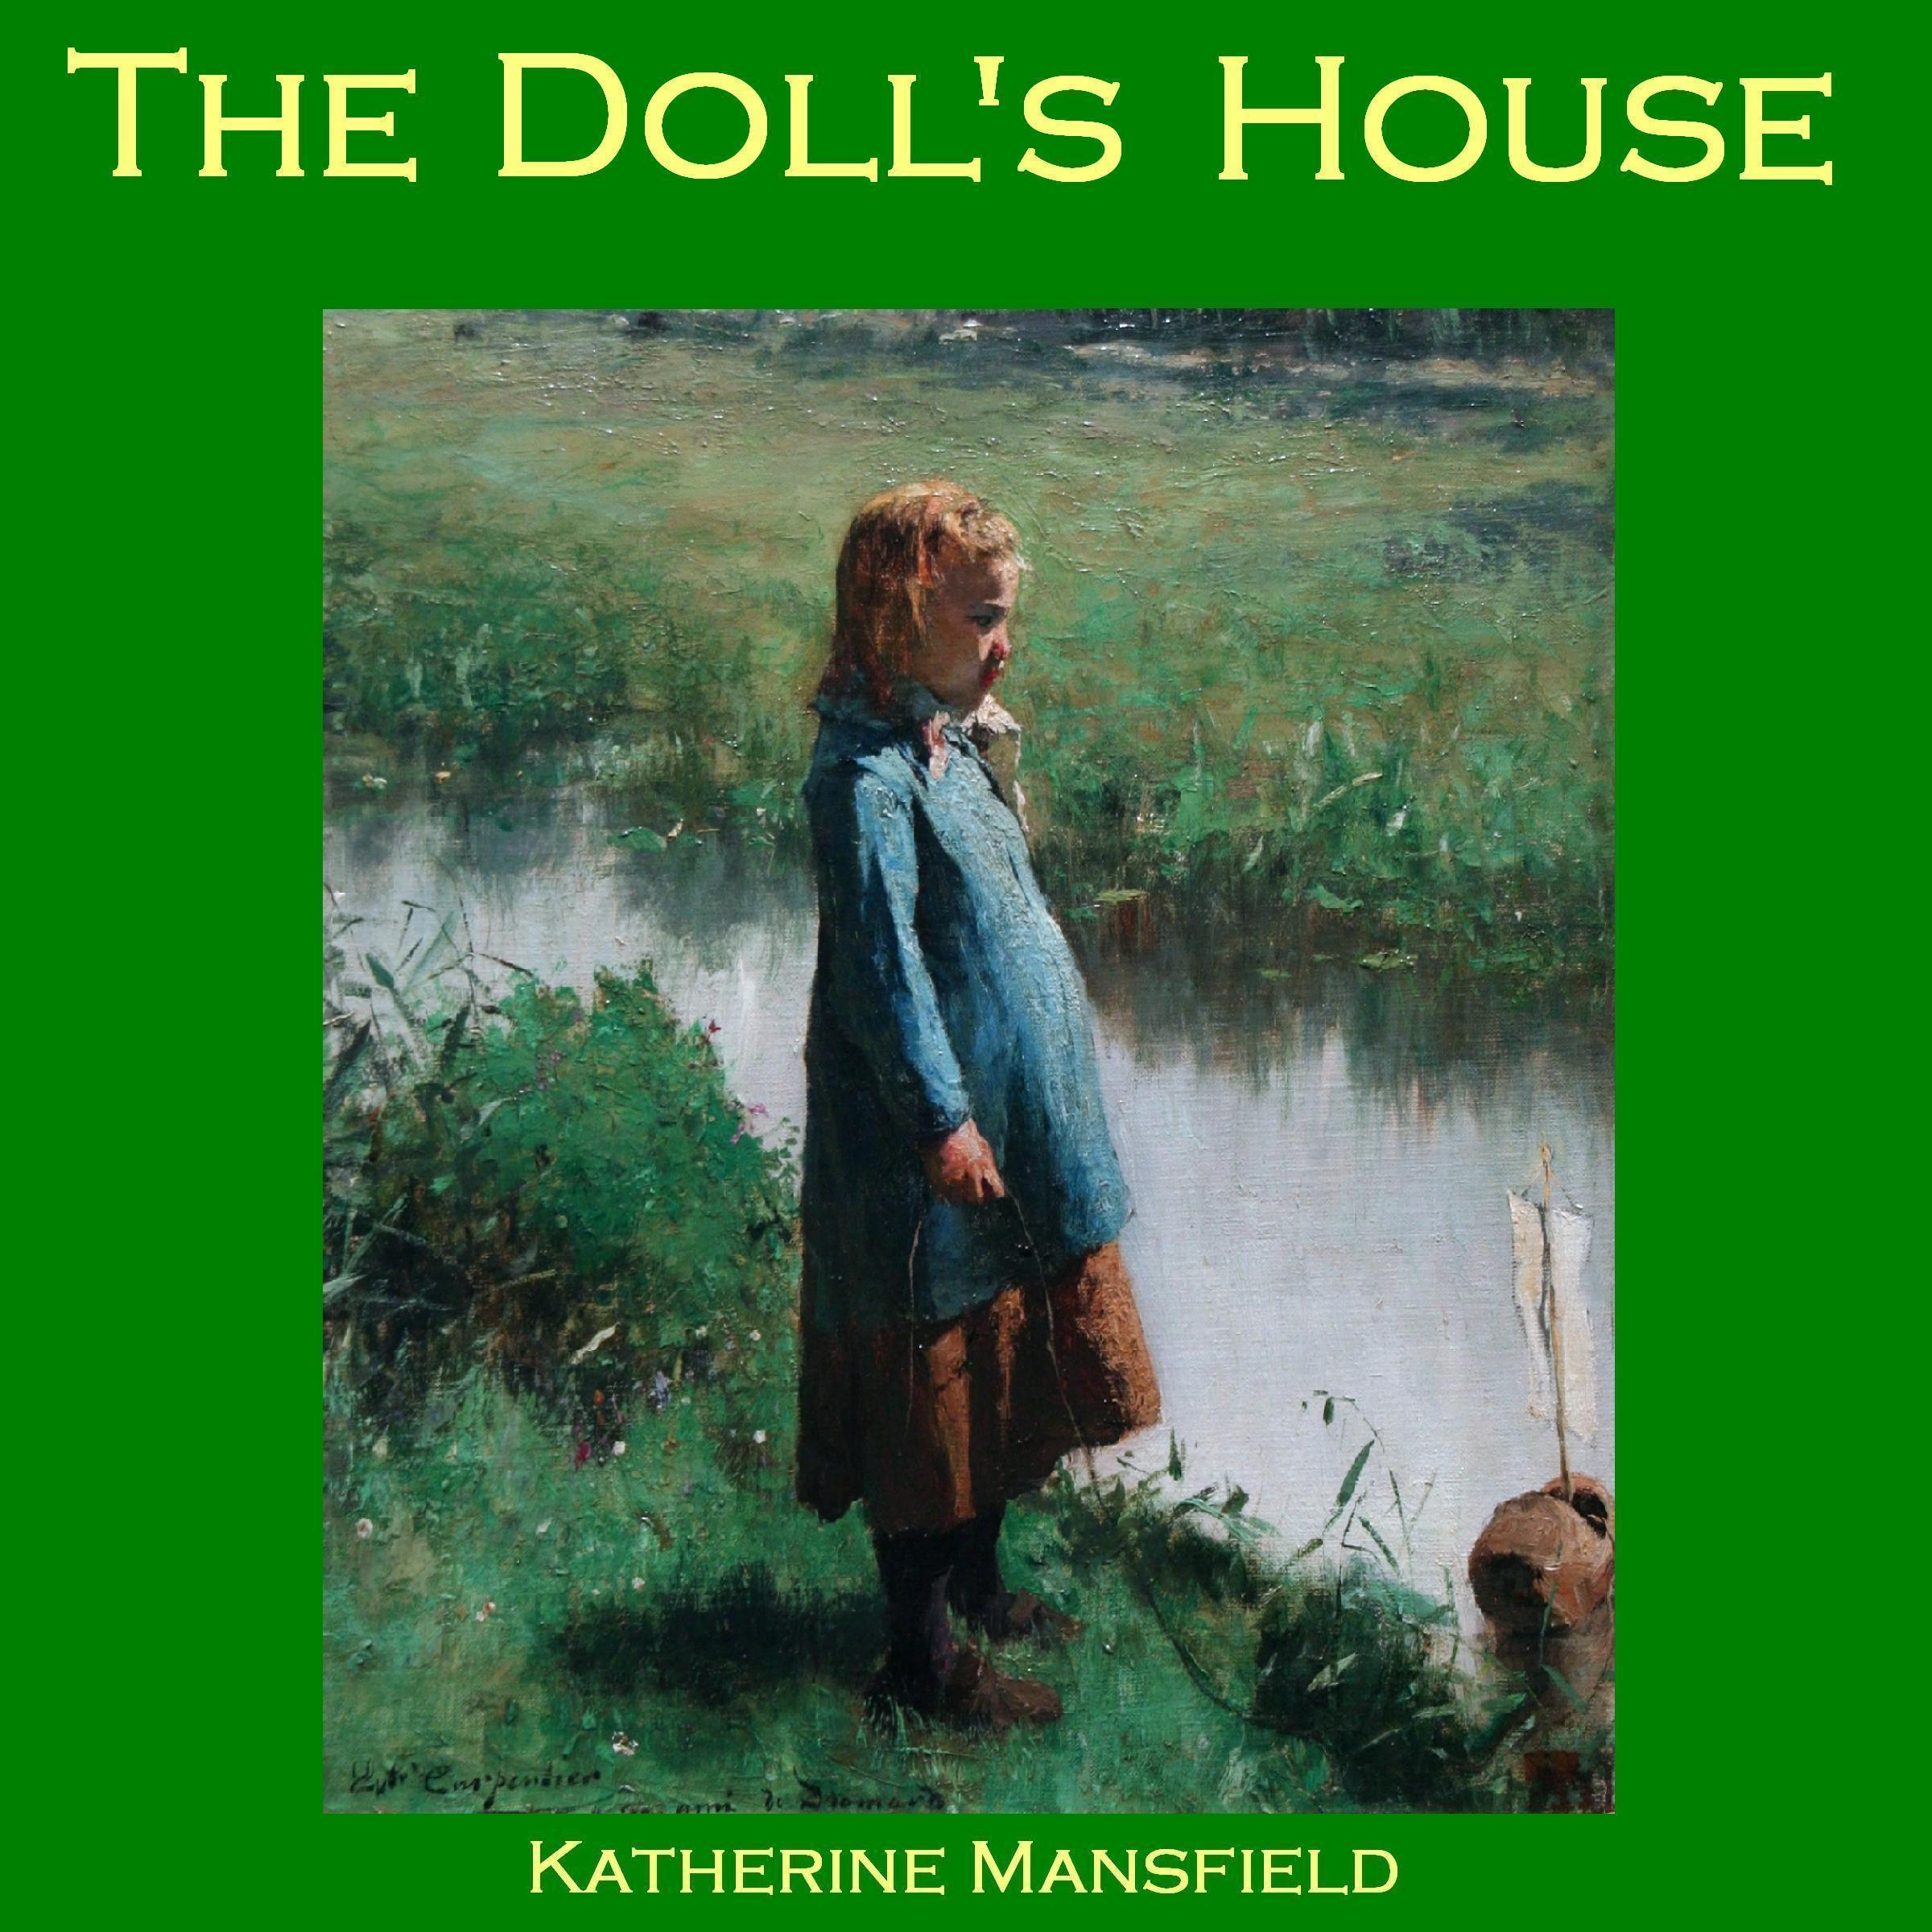 the characterization of kezia in katherine manfields the dolls house The dolls the characterization of kezia in katherine mansfields the dolls house house and other stories photocopiable a doll's the philosophy of genuine dialogue and living life in relation to god and others house by katherine mansfield summary to town after the impact of the second world war on the united states and russia staying with the.